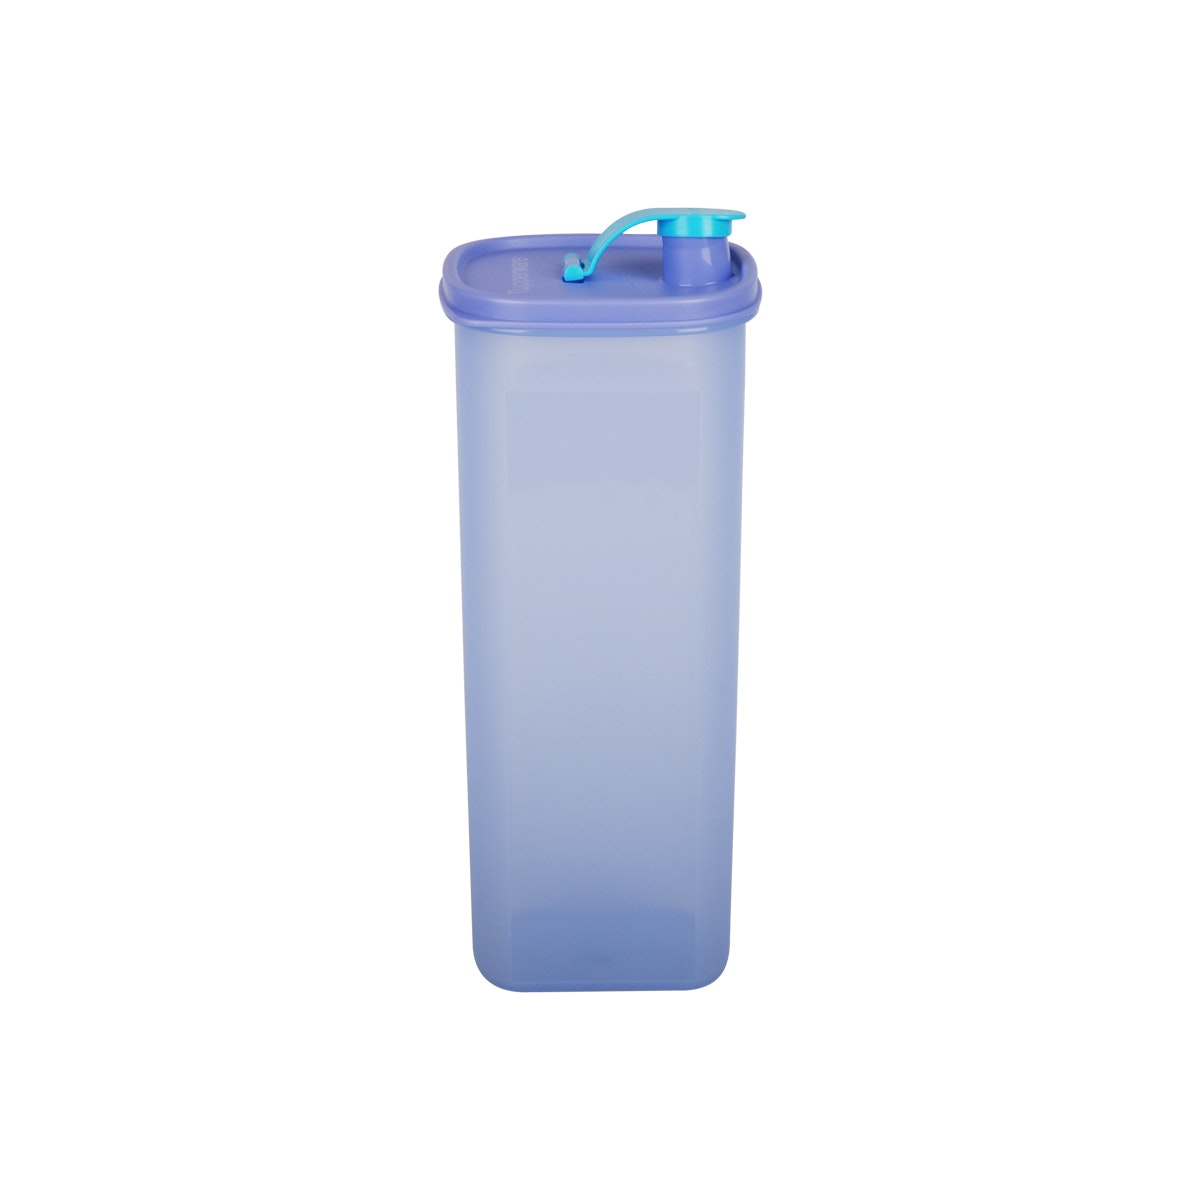 Tupperware Slimline 2L Pitcher